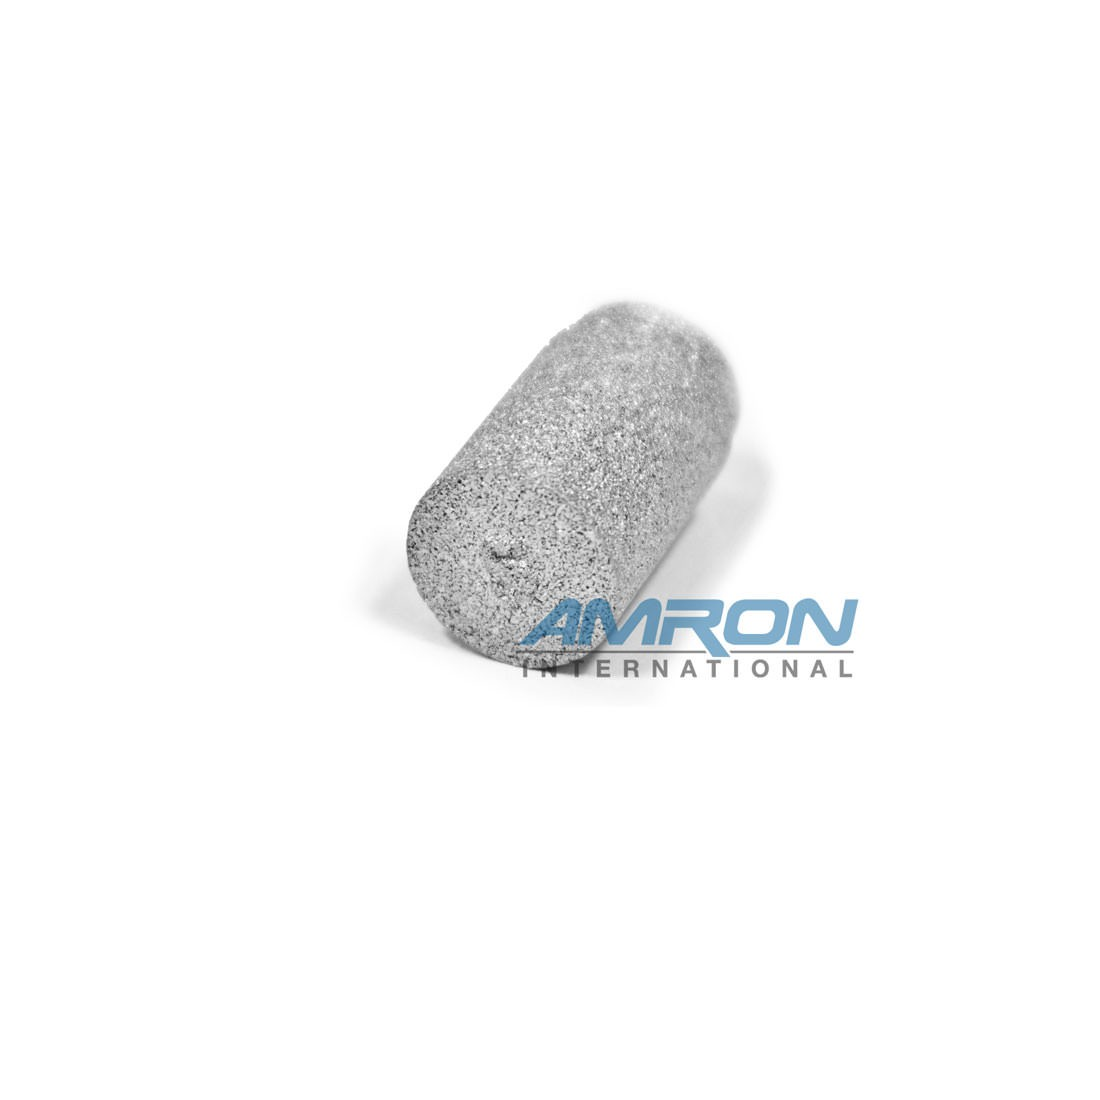 Gyrolok 6320 Series Replacement Element - 40 to 55 Micron Range - Cv .42